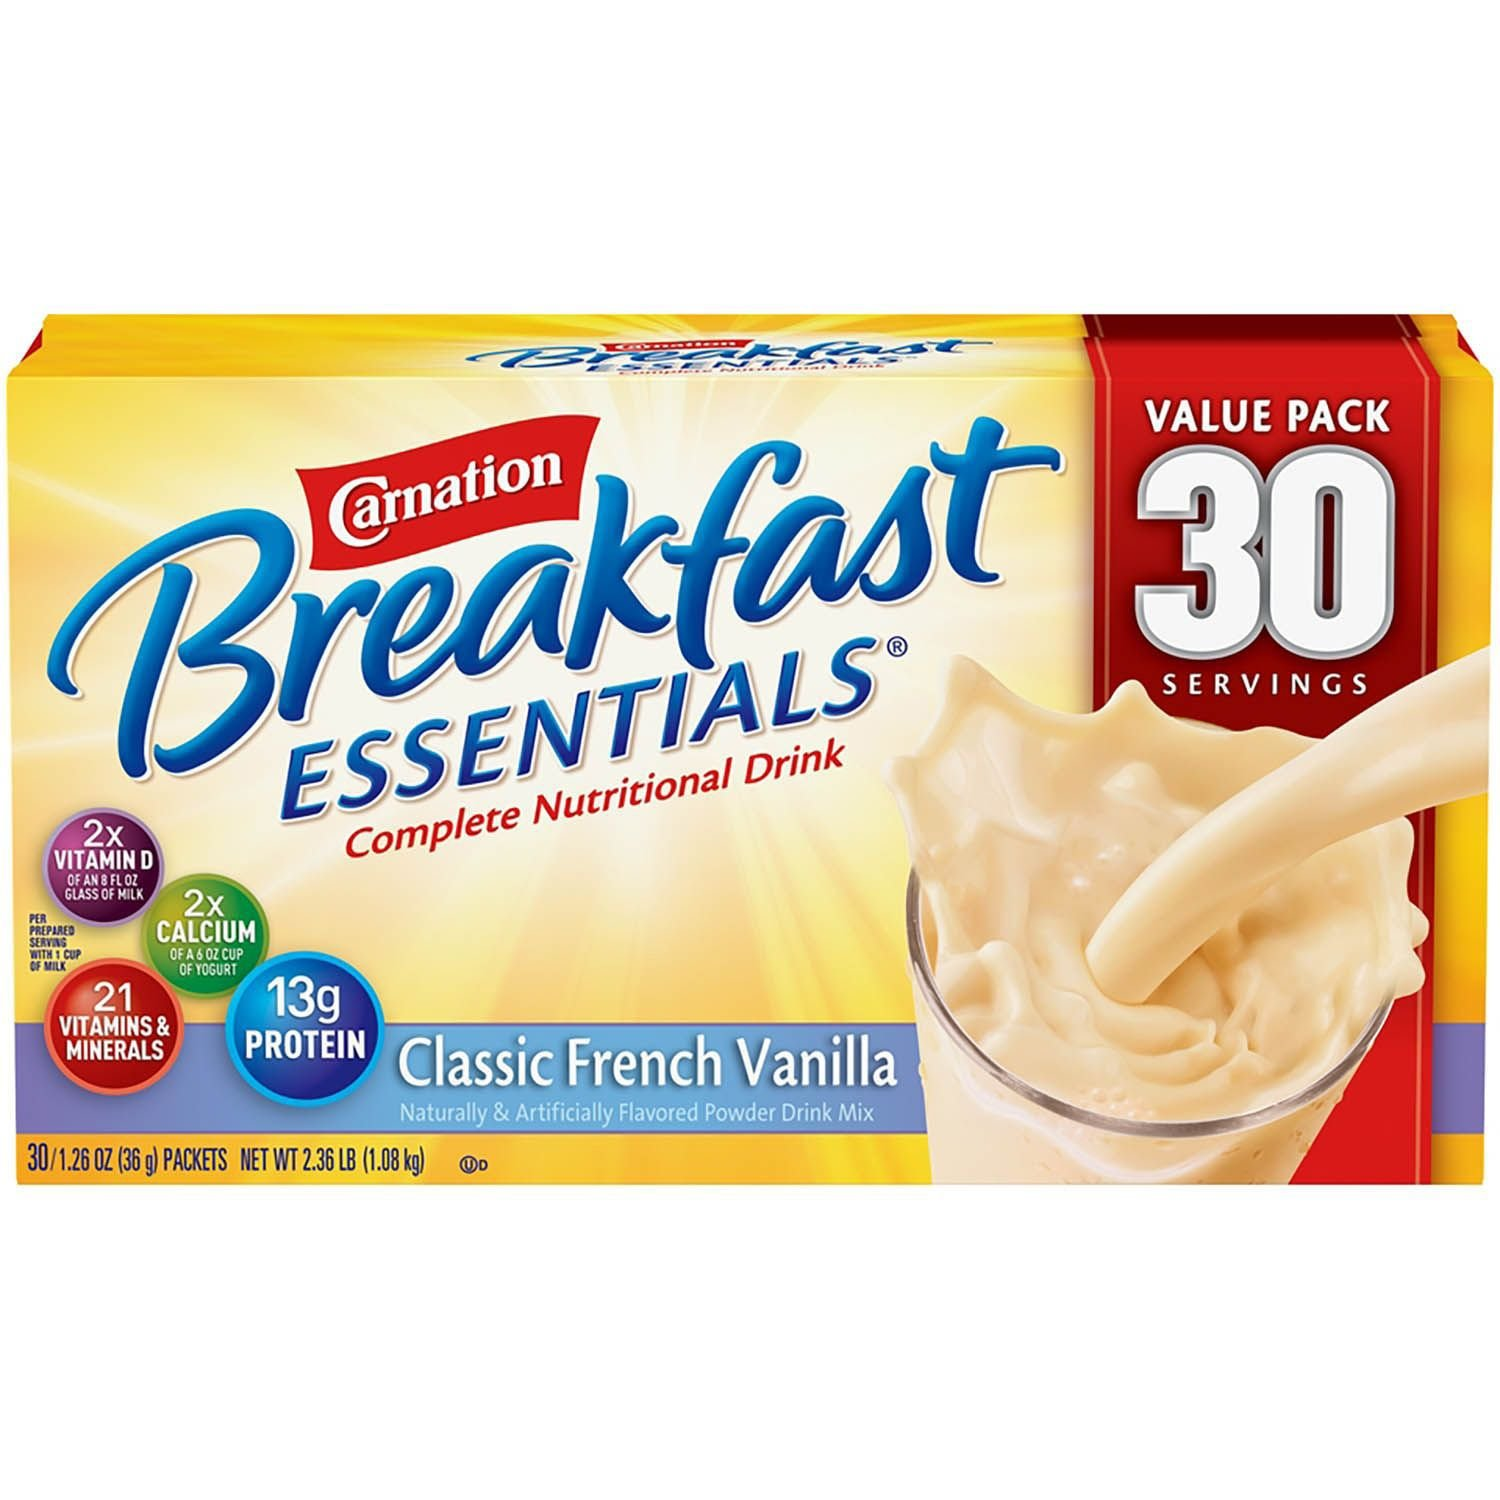 Nestle Carnation Breakfast Essentials - Classic French Vanilla - Drink Mix - 30 Servings Value Pack! (Pack of 2) COI@HC